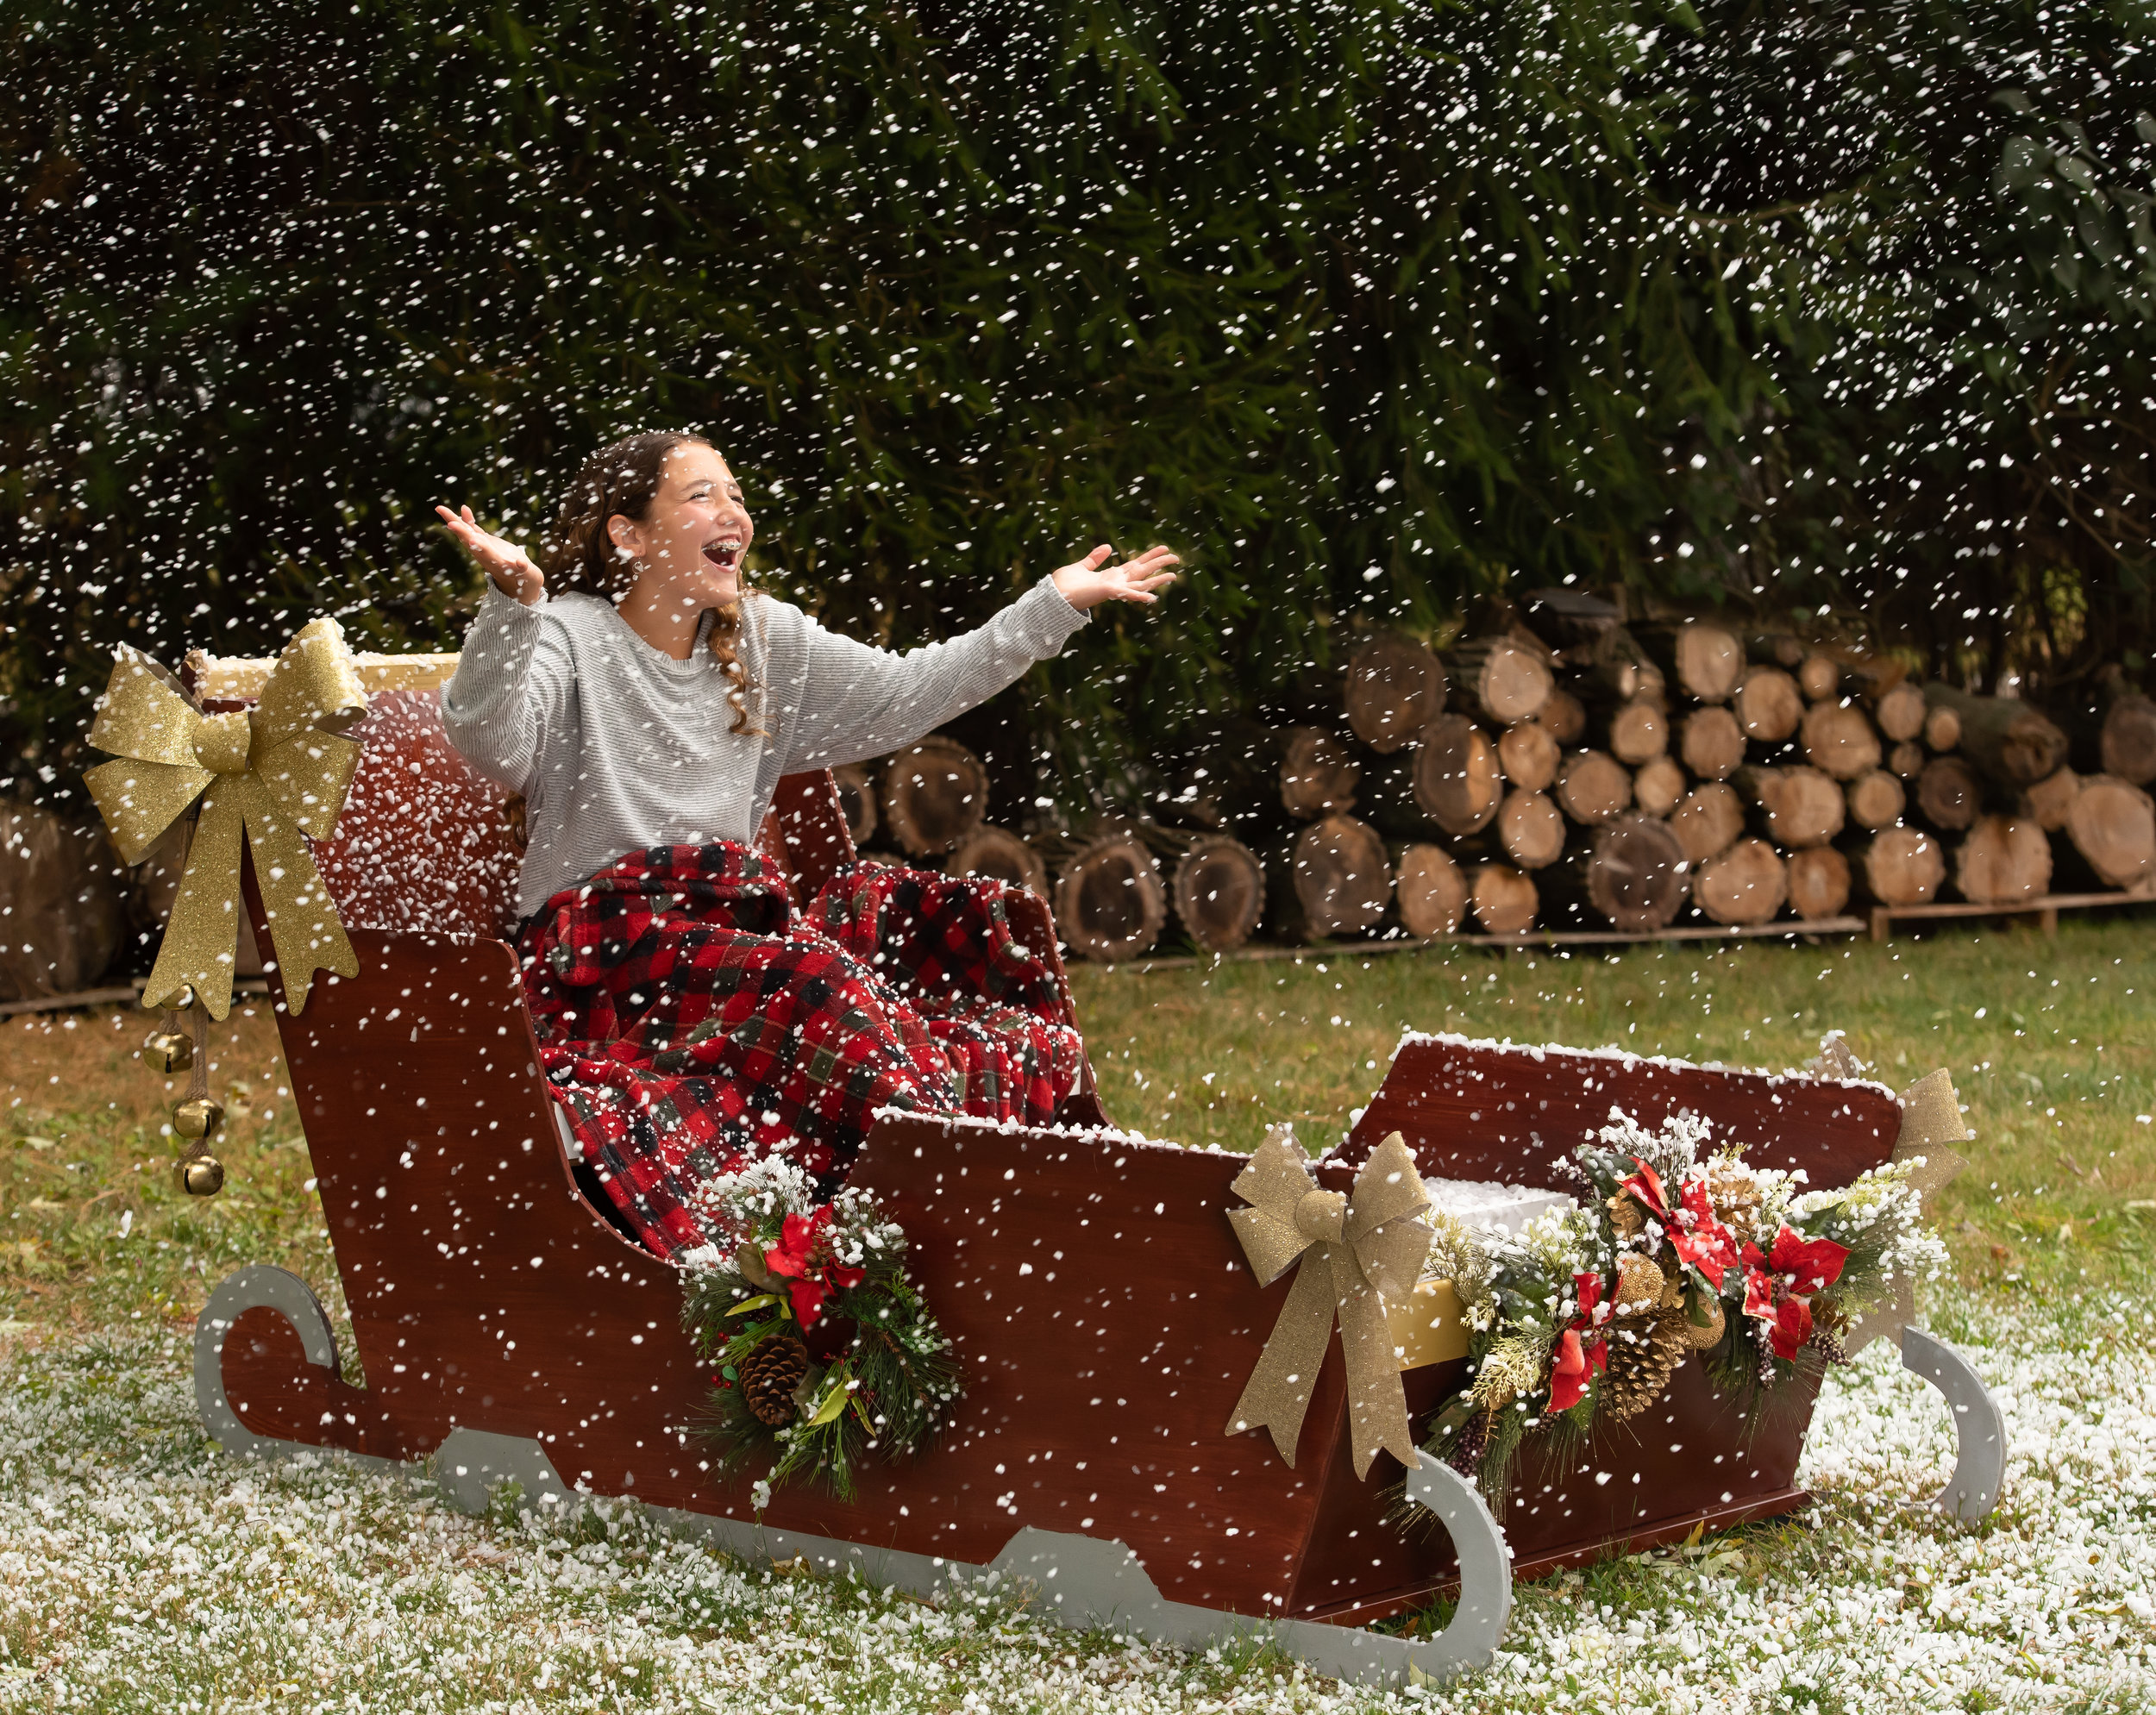 It's READY! - 2019 Holiday Mini Session - Sleigh with SNOW MACHINE!